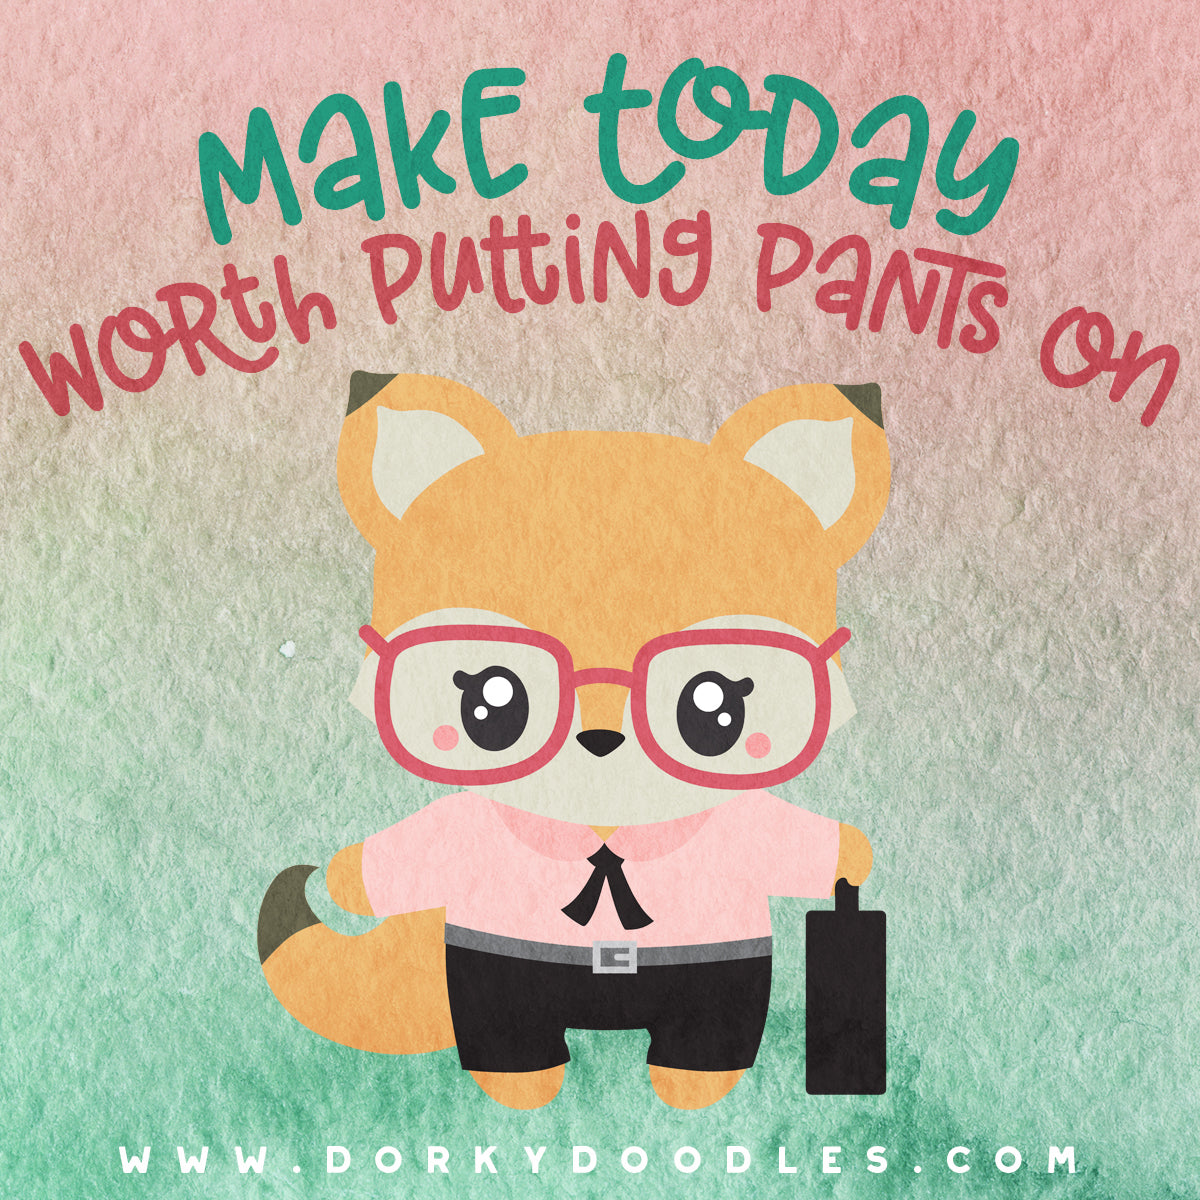 make today worth putting pants on